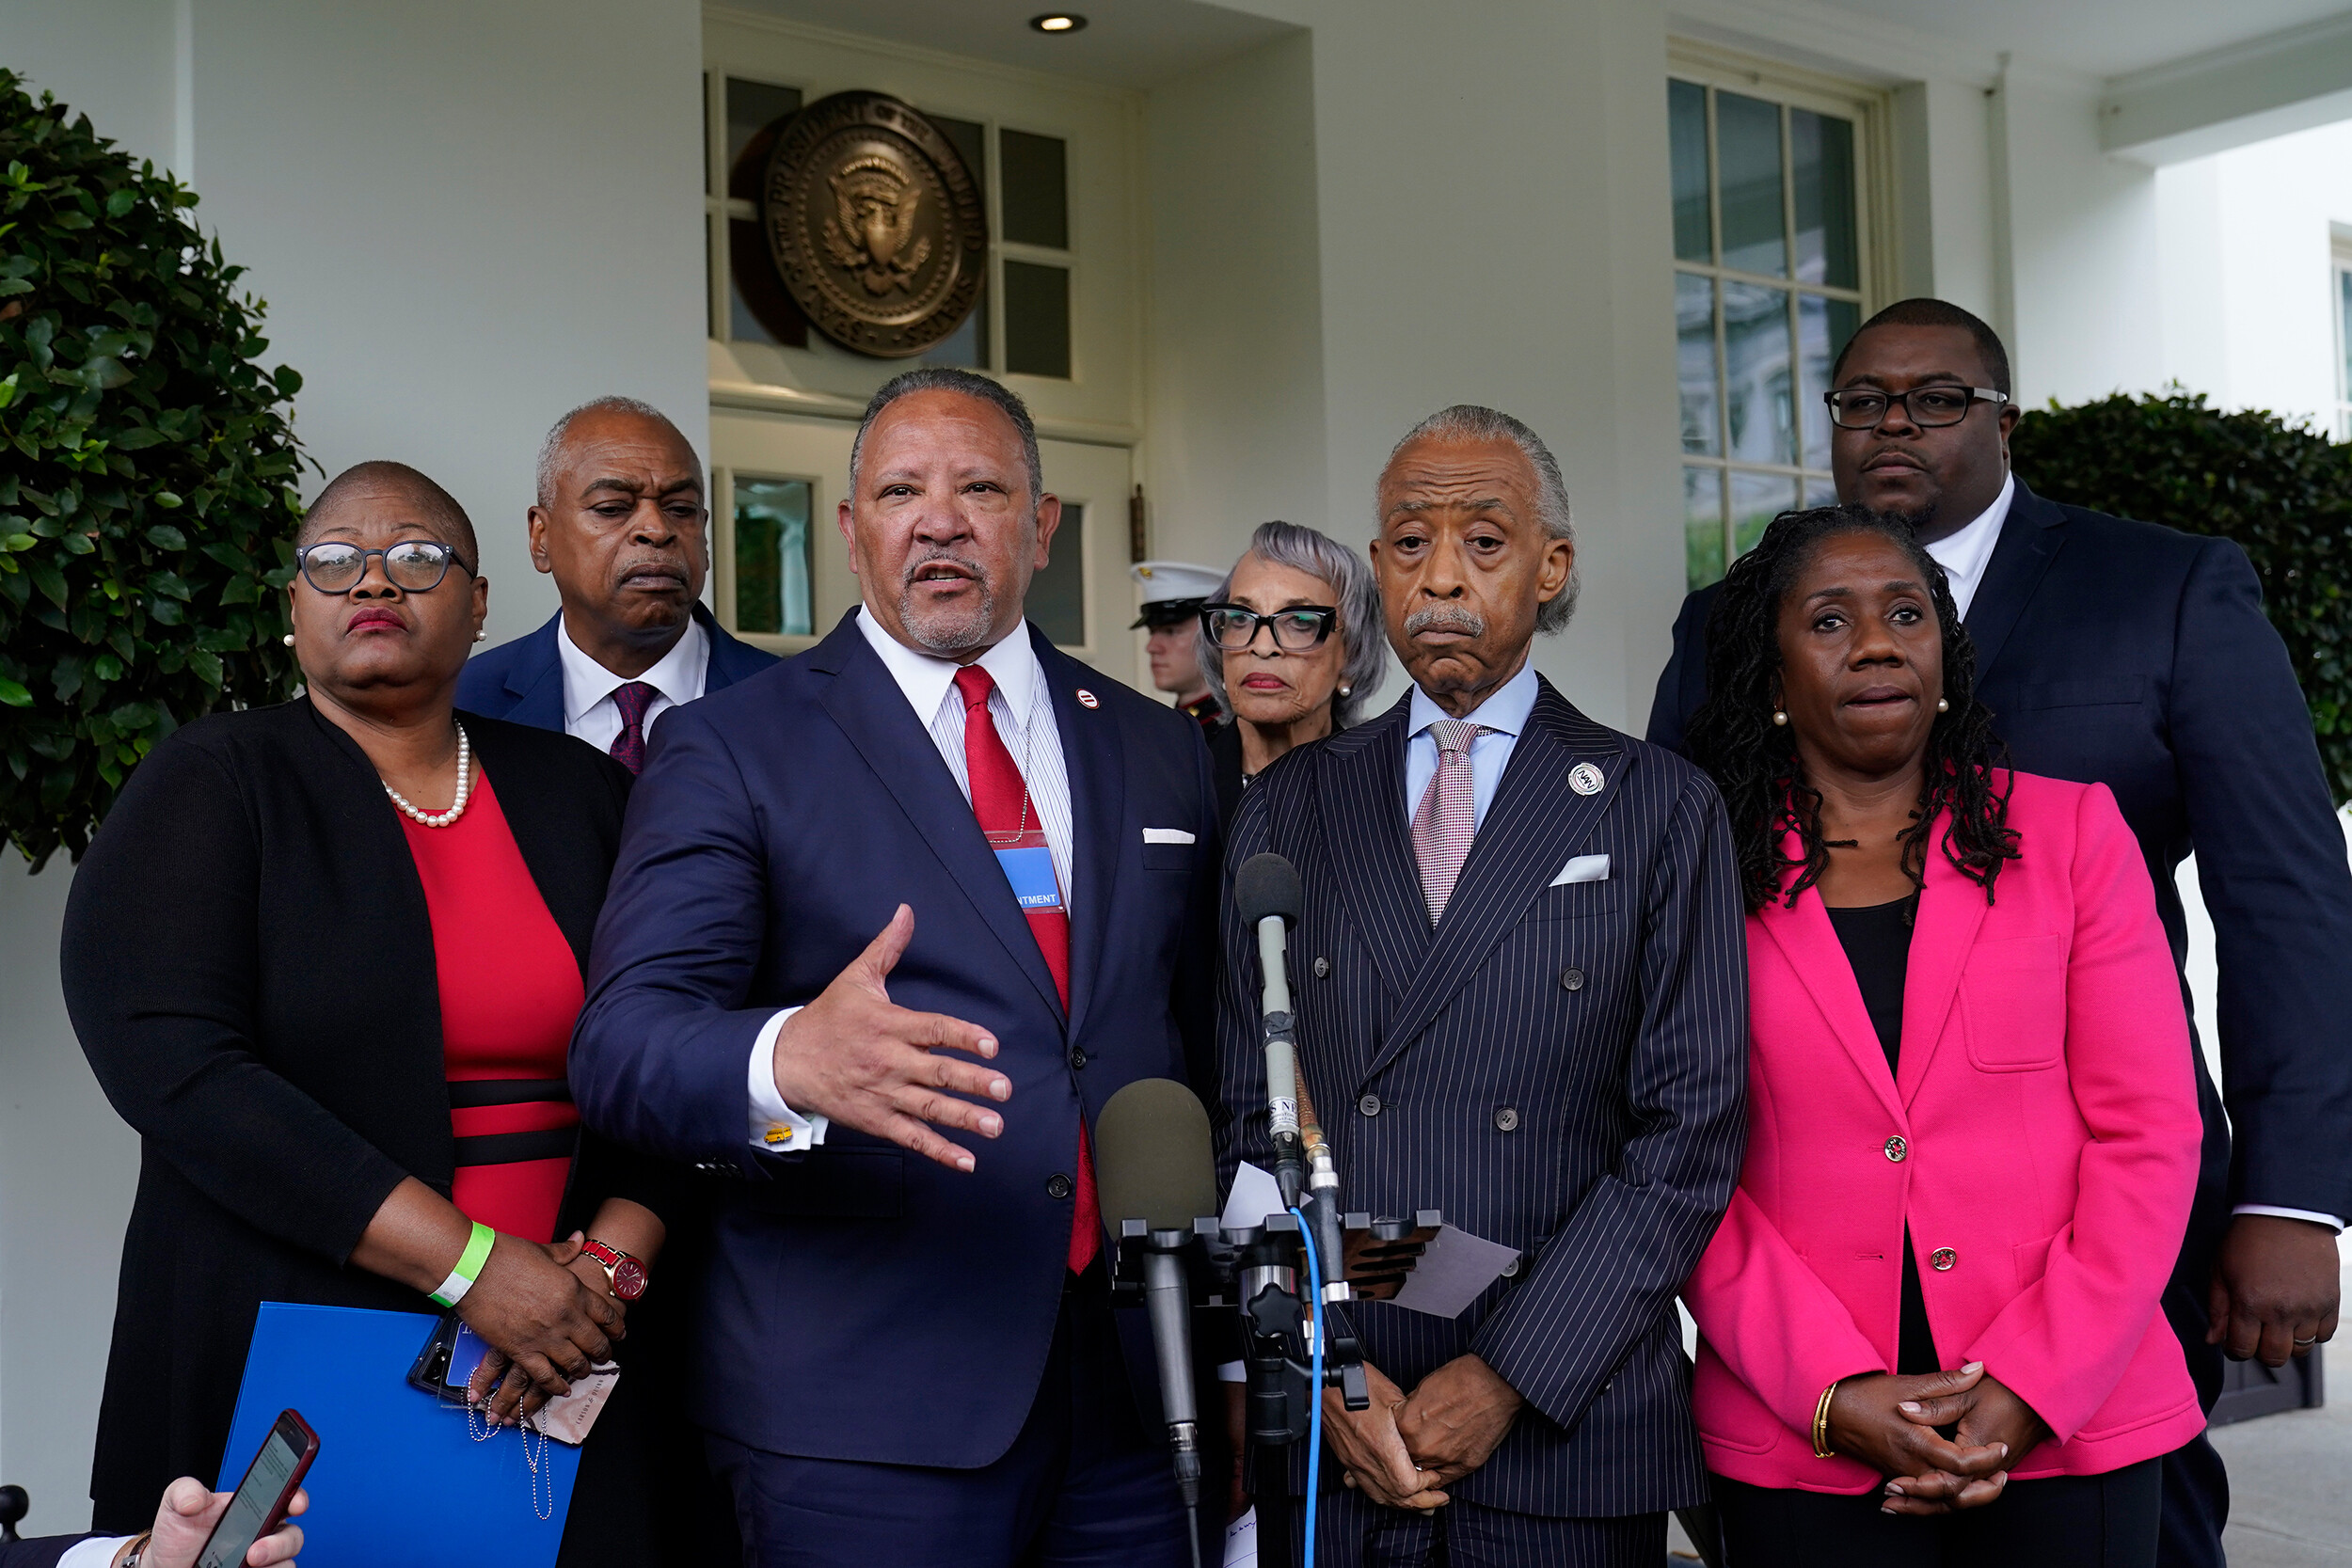 Biden not taking a stand against filibuster in speech would be an 'epic fail,' civil rights leaders say